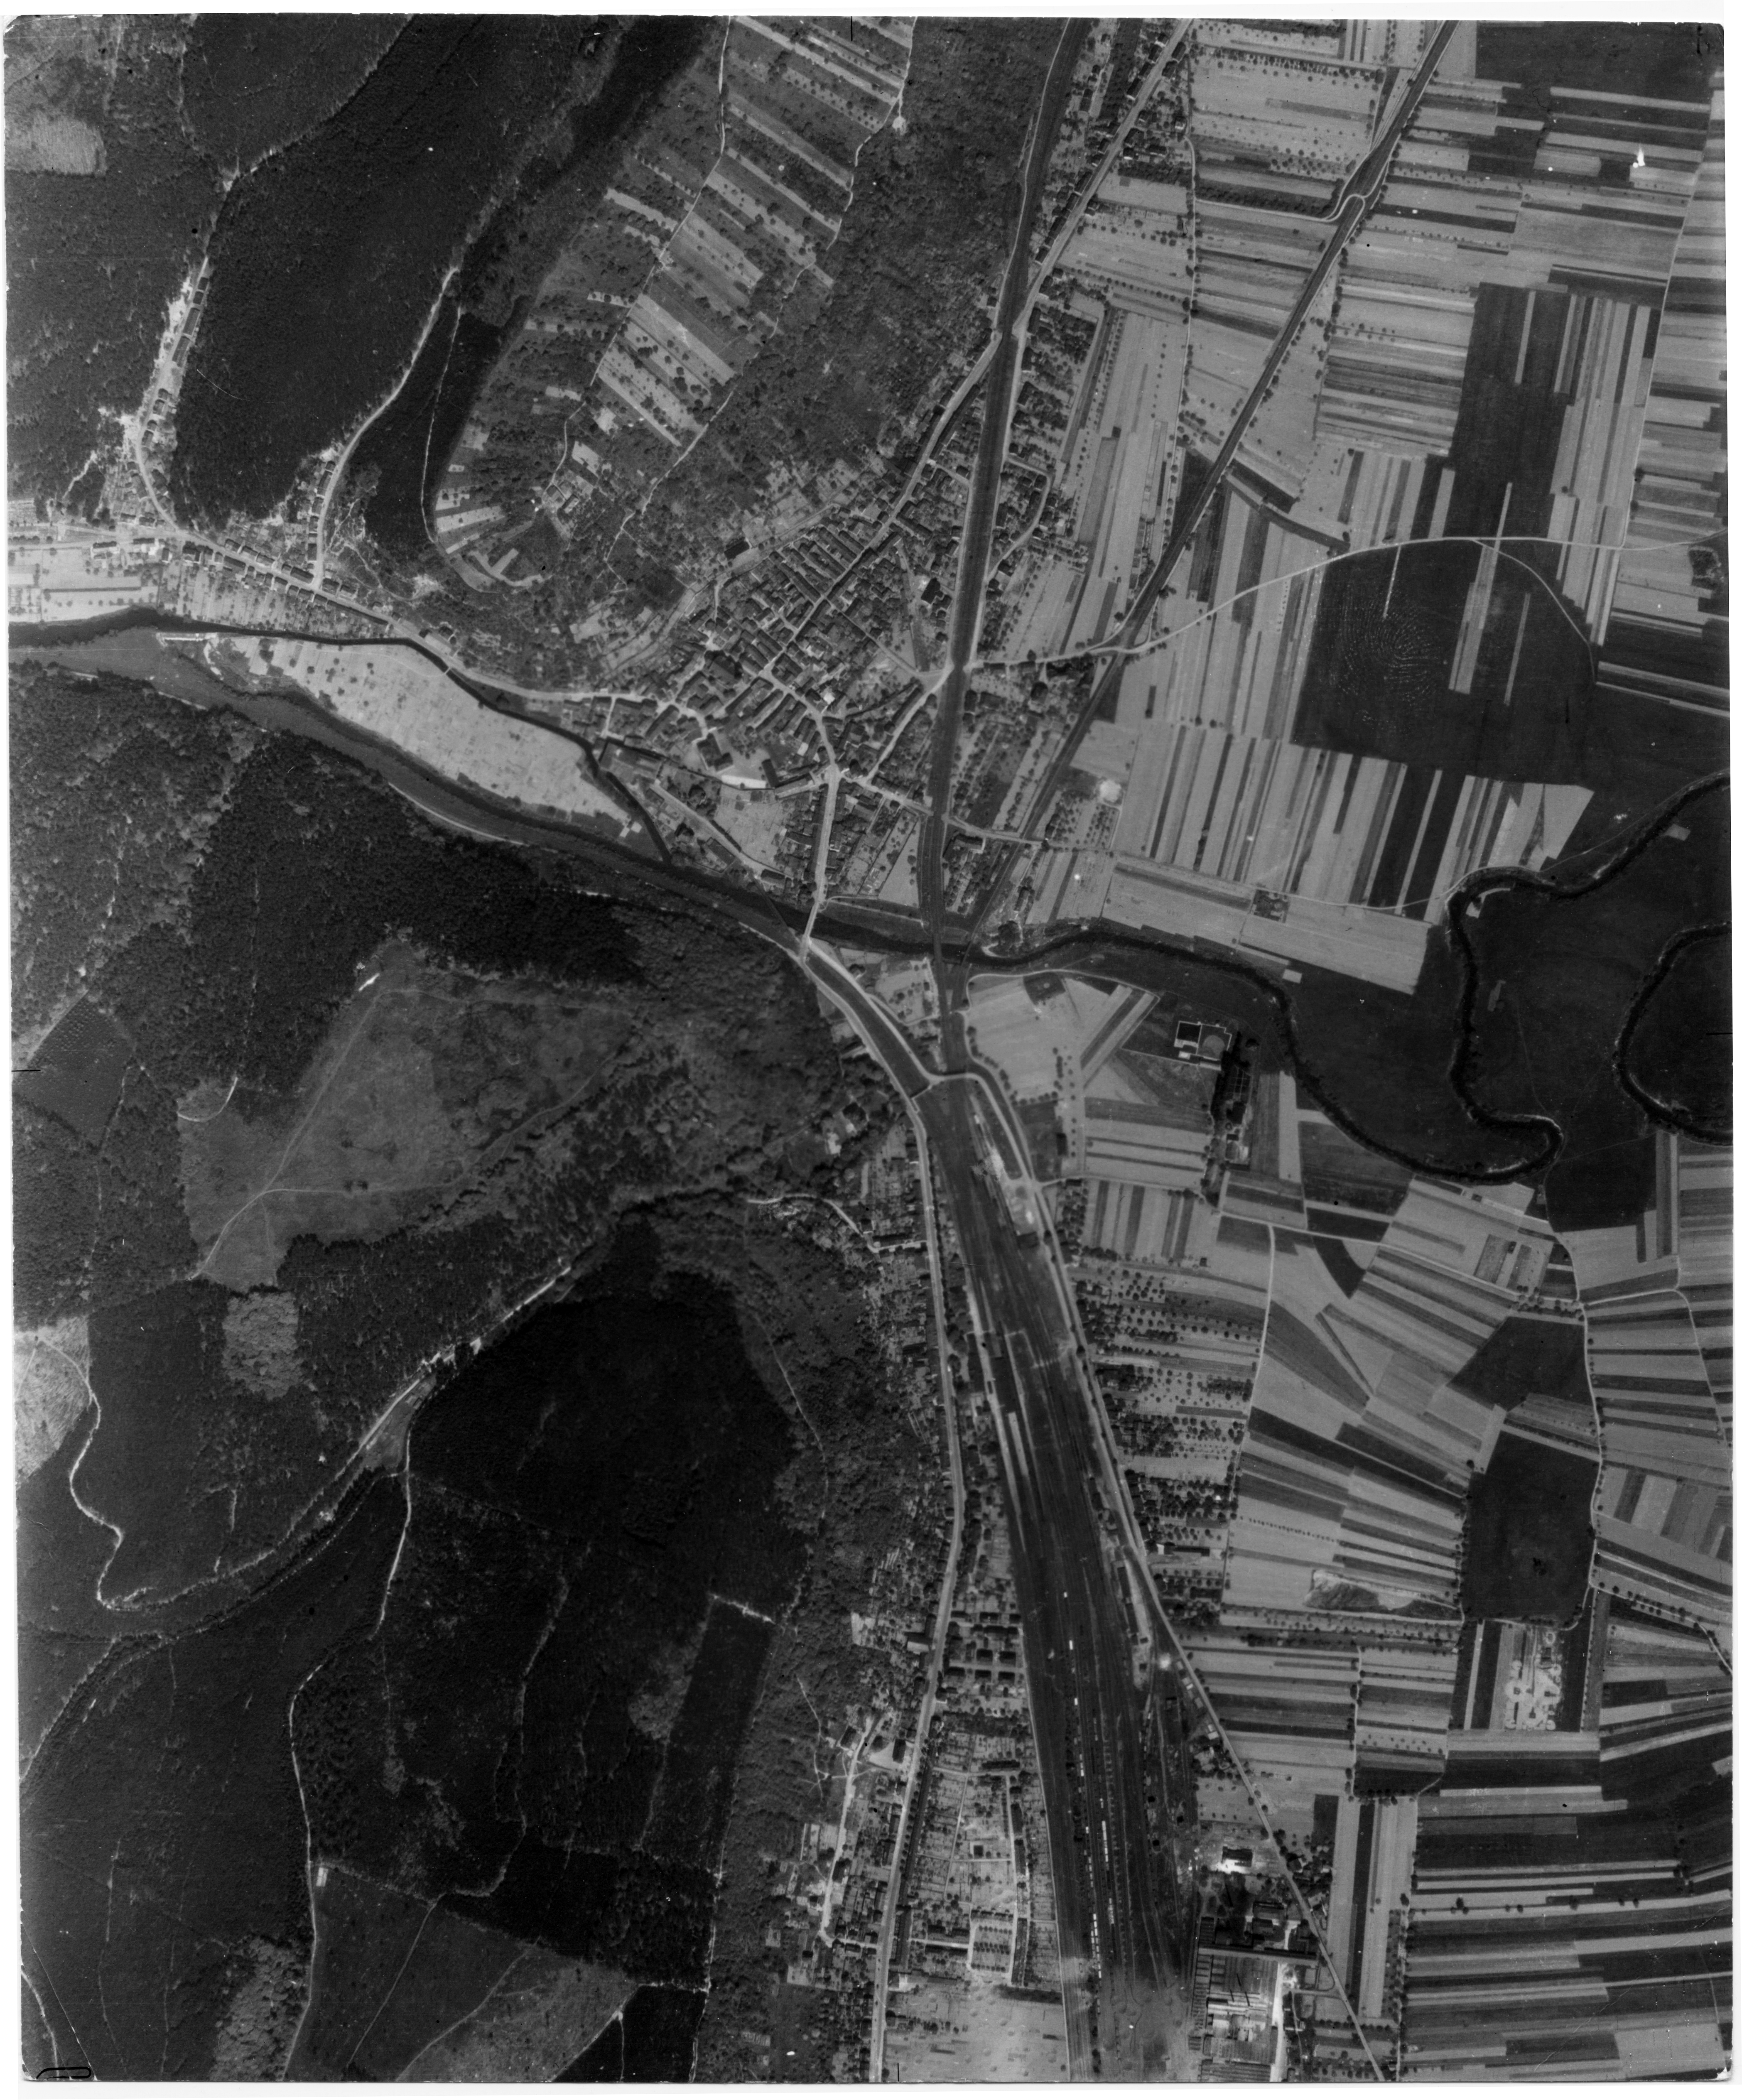 USAAAF 7PG22FS aerial recon photo to Ehrang May 12 1944 01